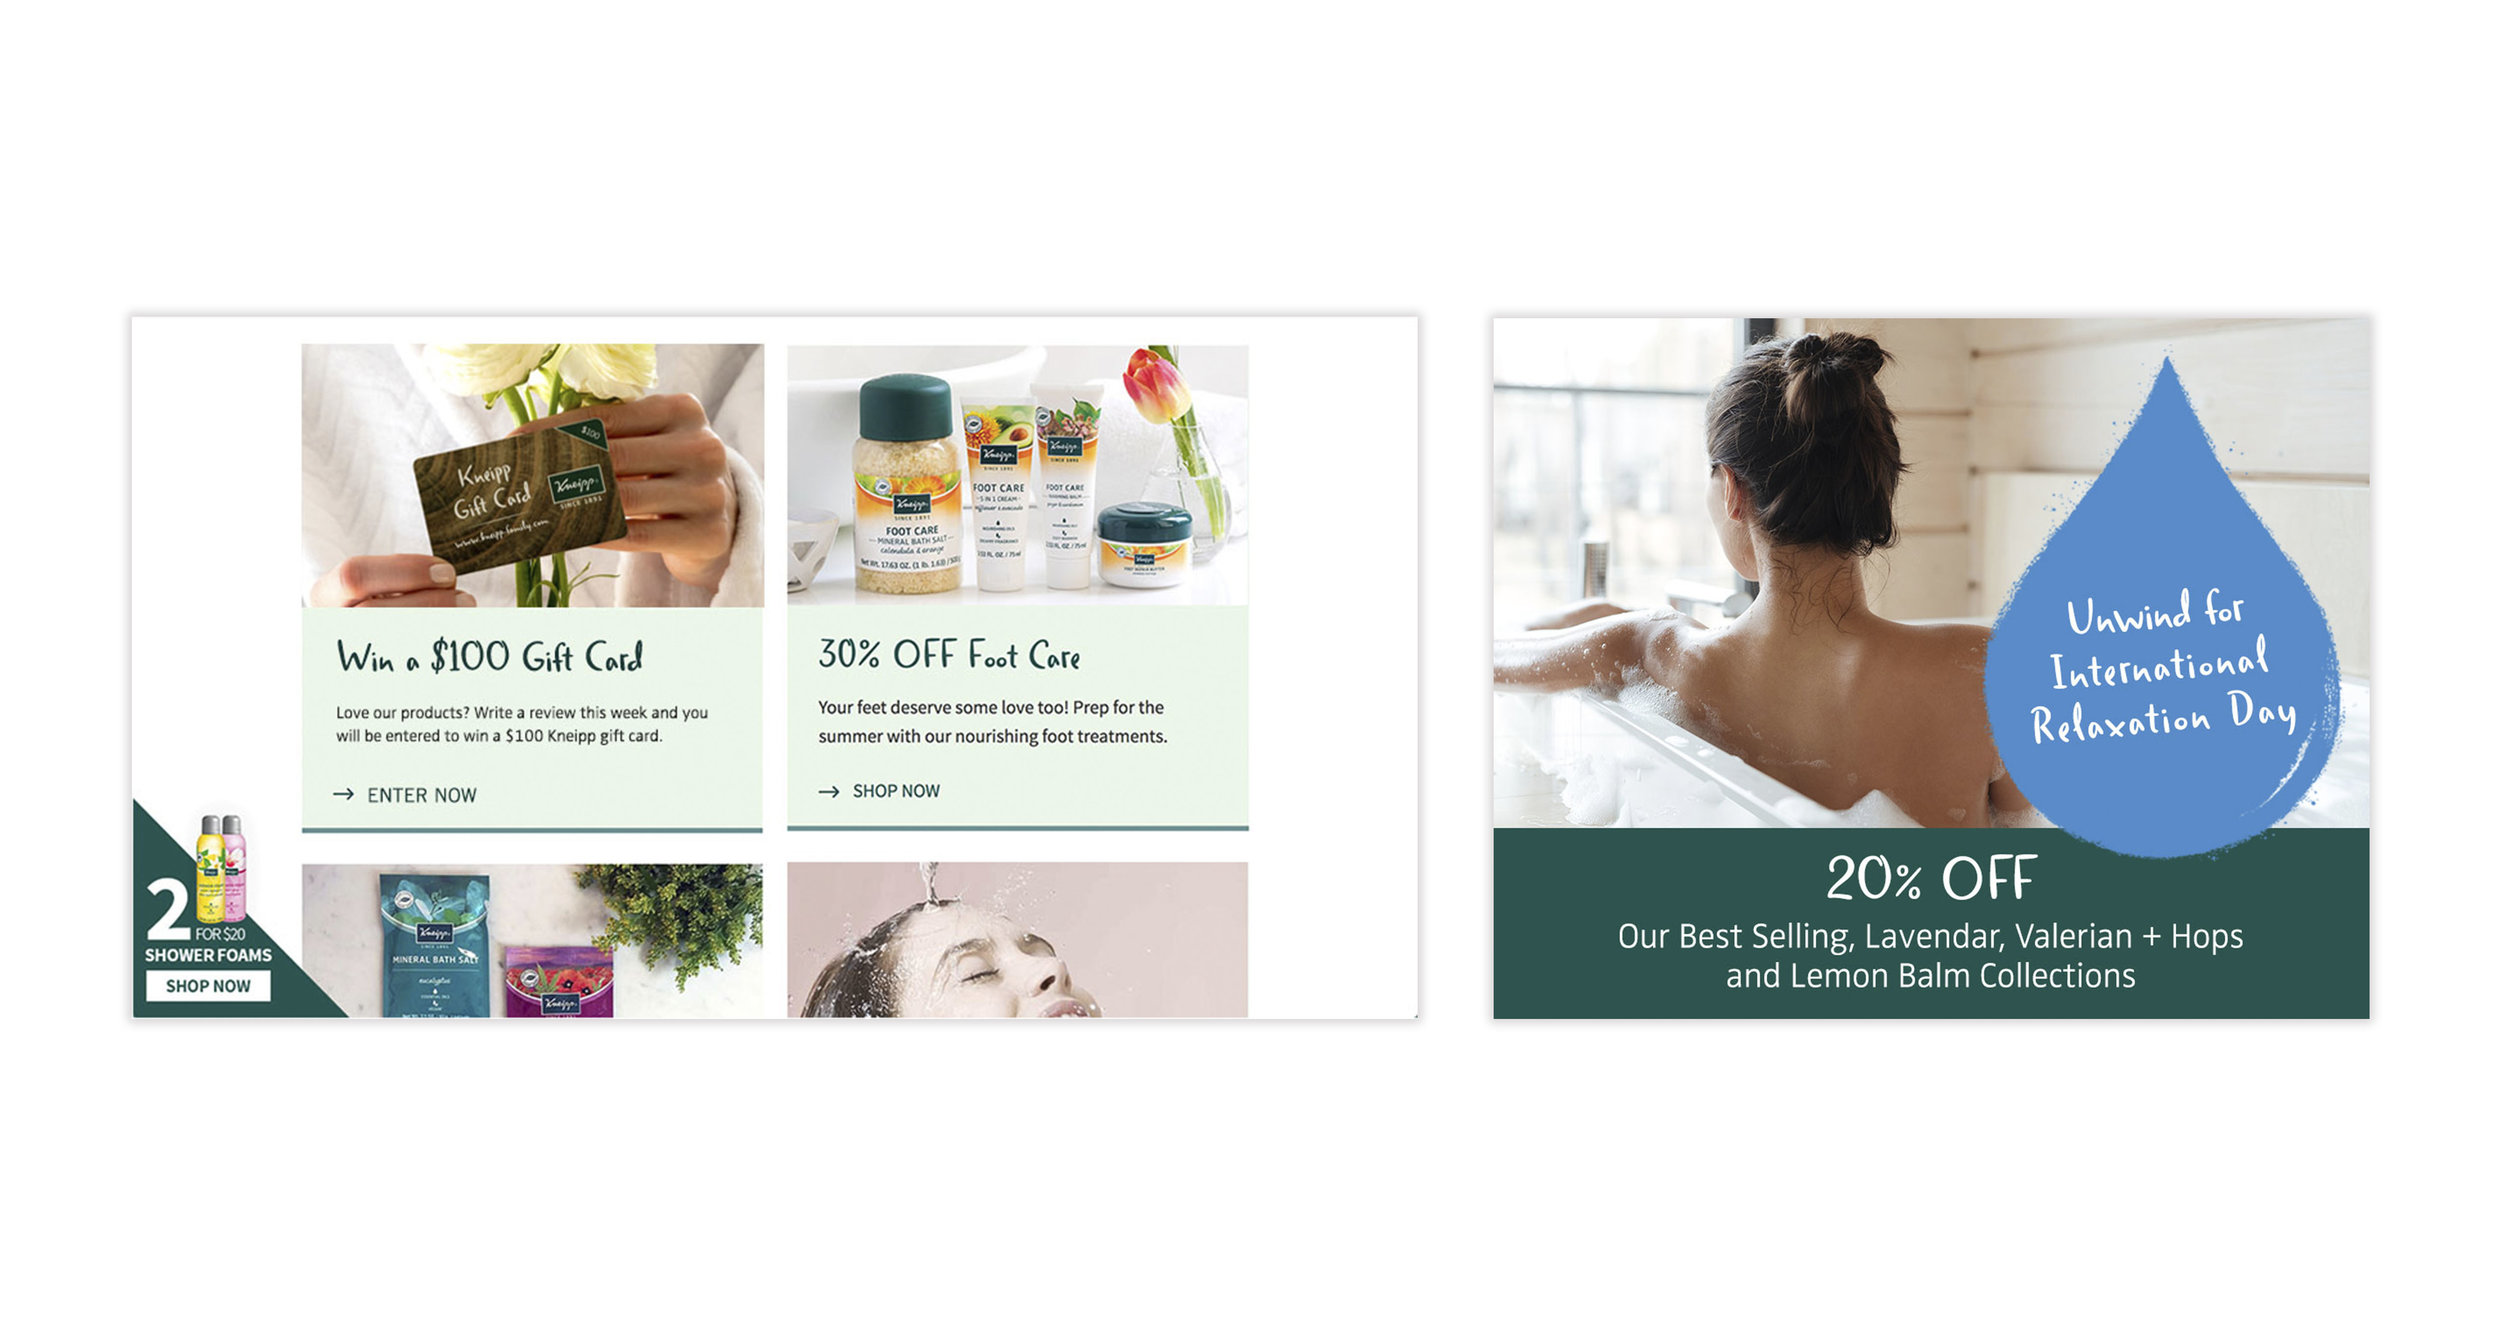 Kneipp_Edited-EmailCampaign.jpg